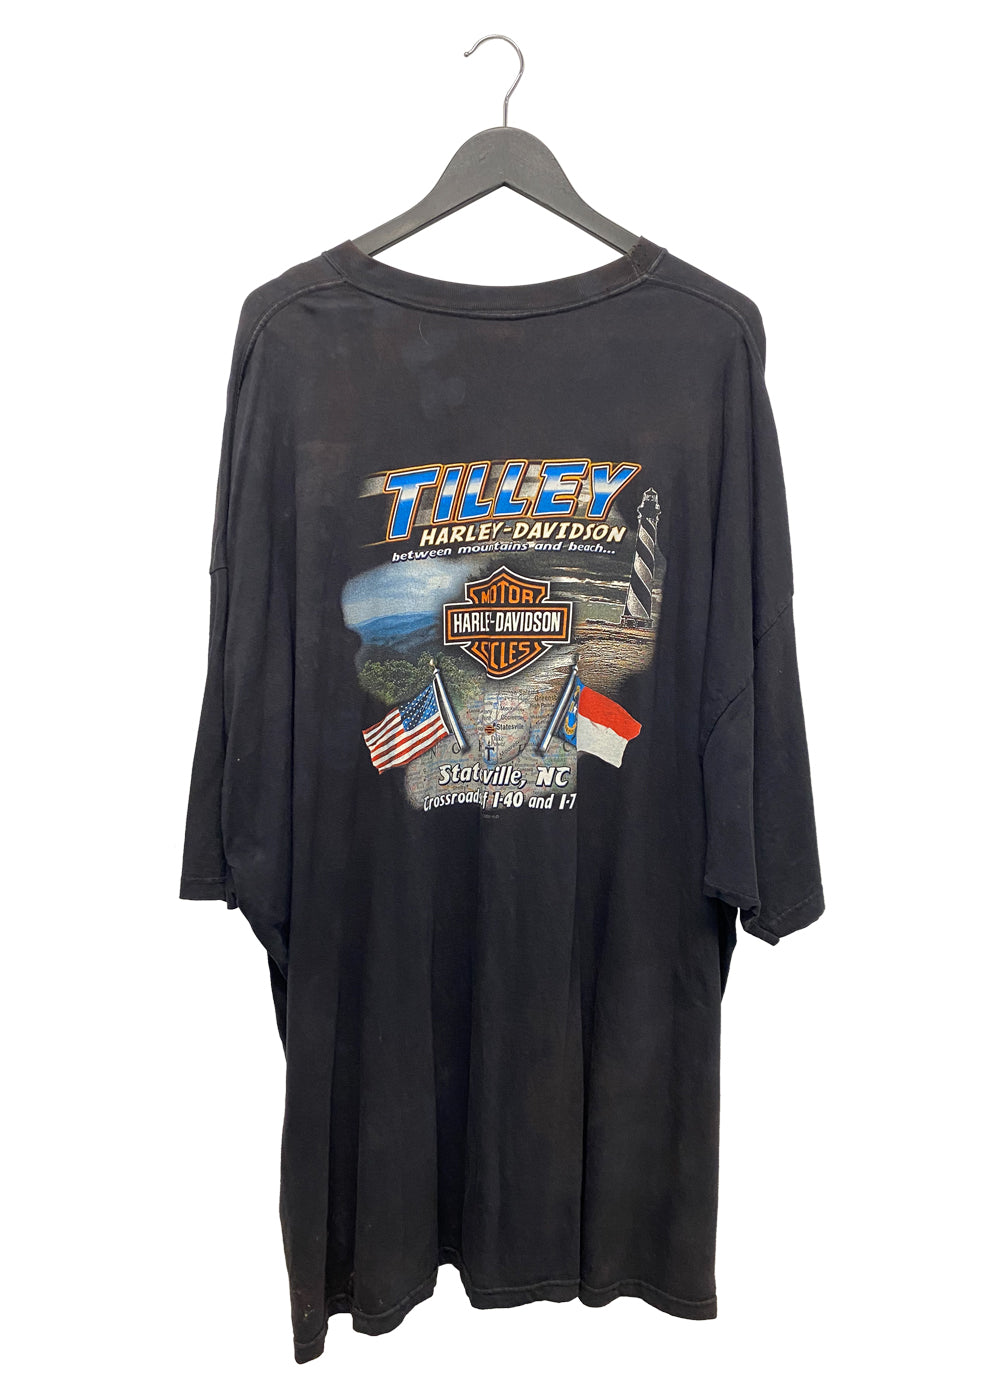 THE BEATLES 'A HARD DAY'S NIGHT' COLLECTOR TEE